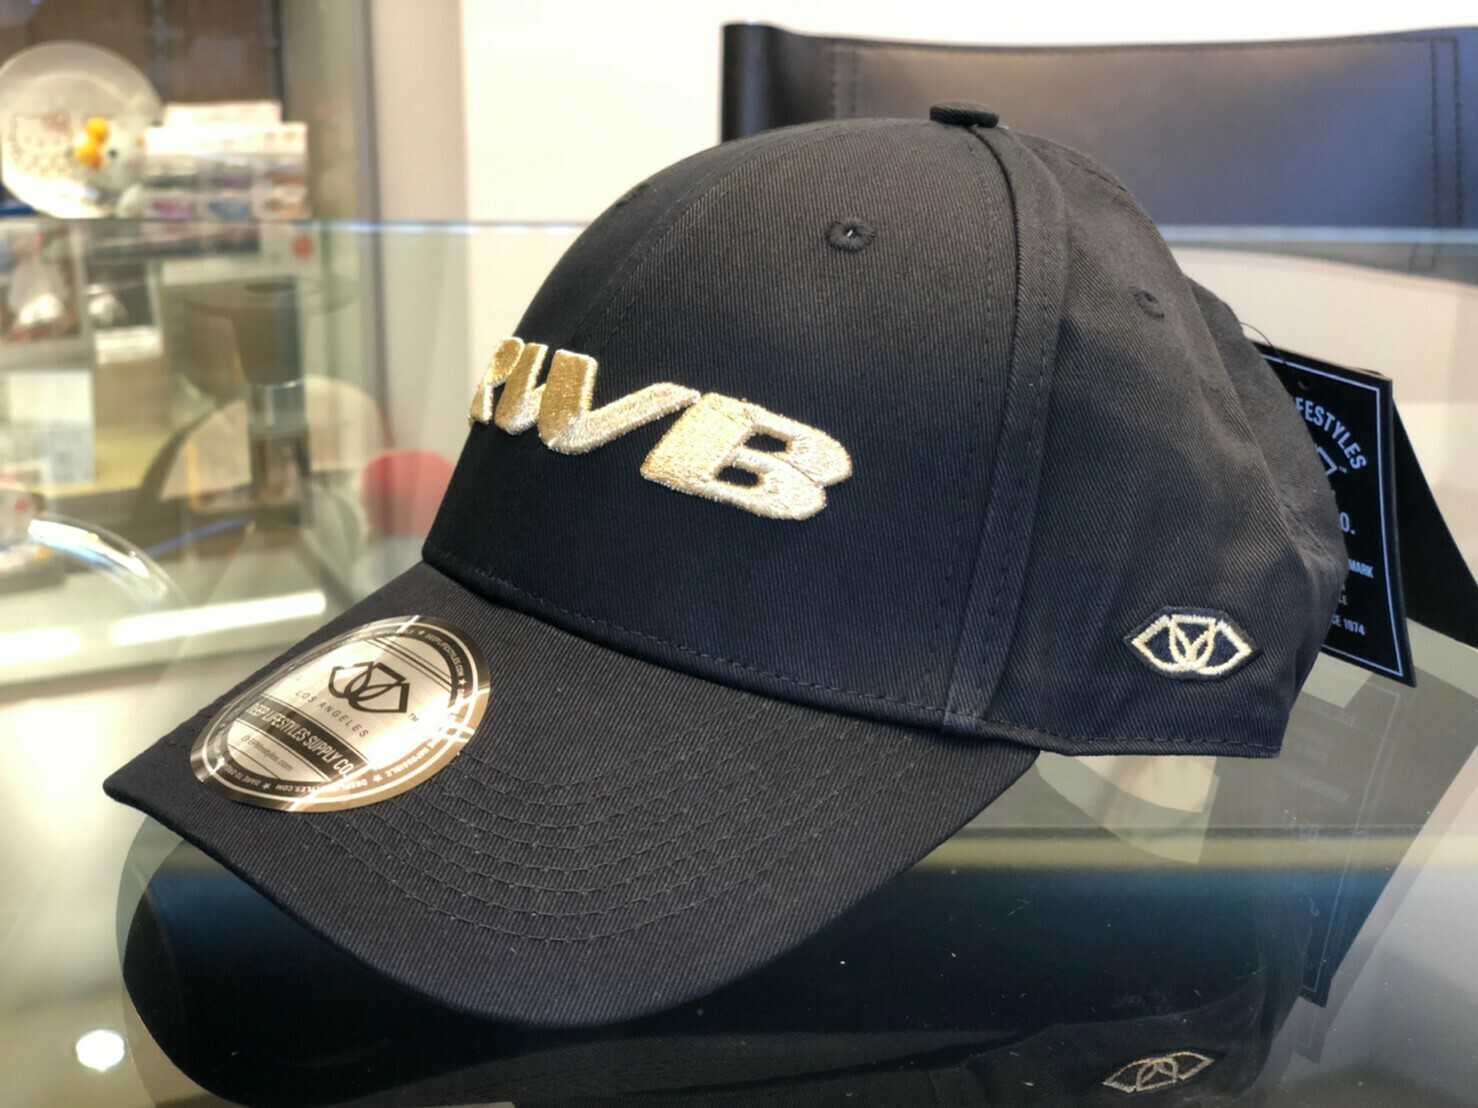 DEEP×RWB Polo Cap (Gold)